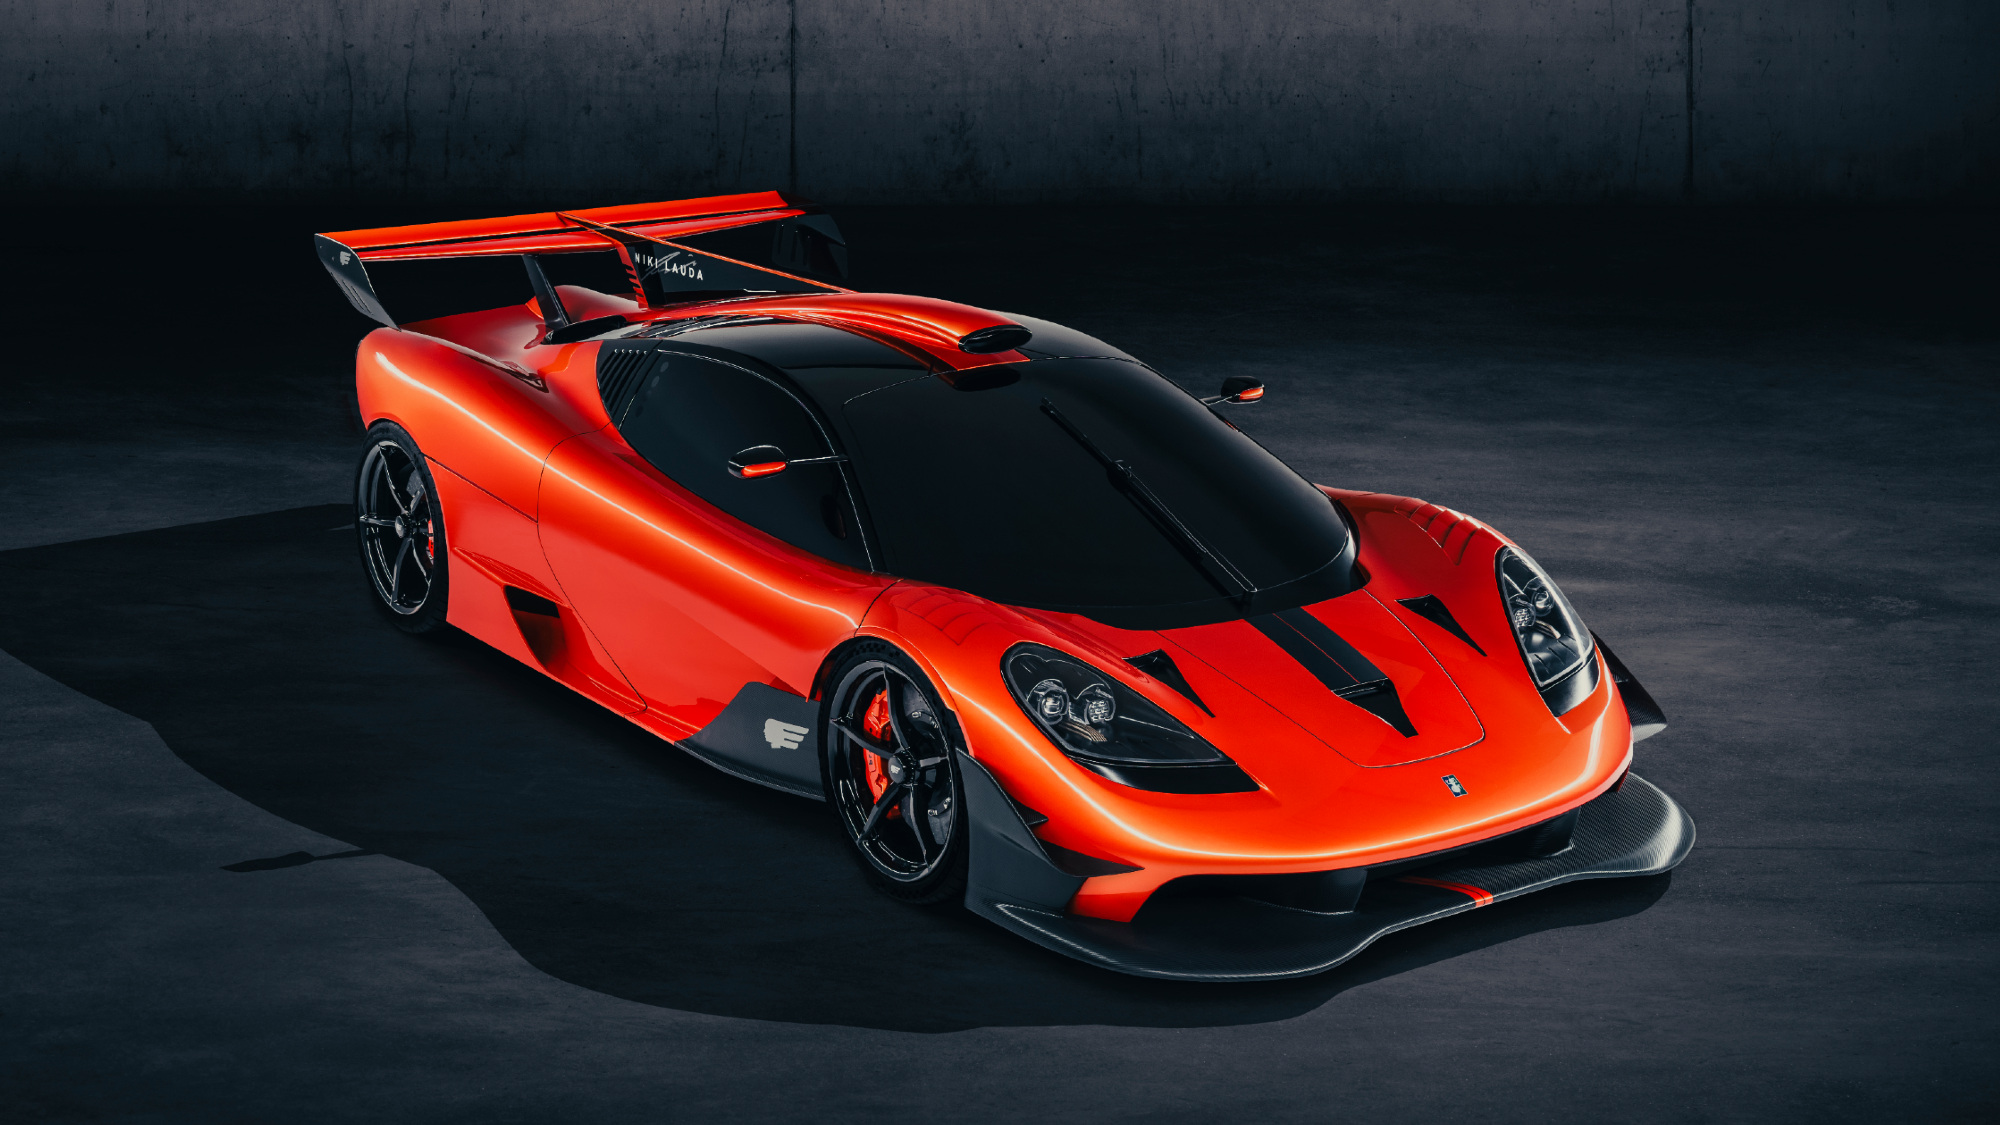 Limited T.50s Niki Lauda edition revealed by Gordon Murray